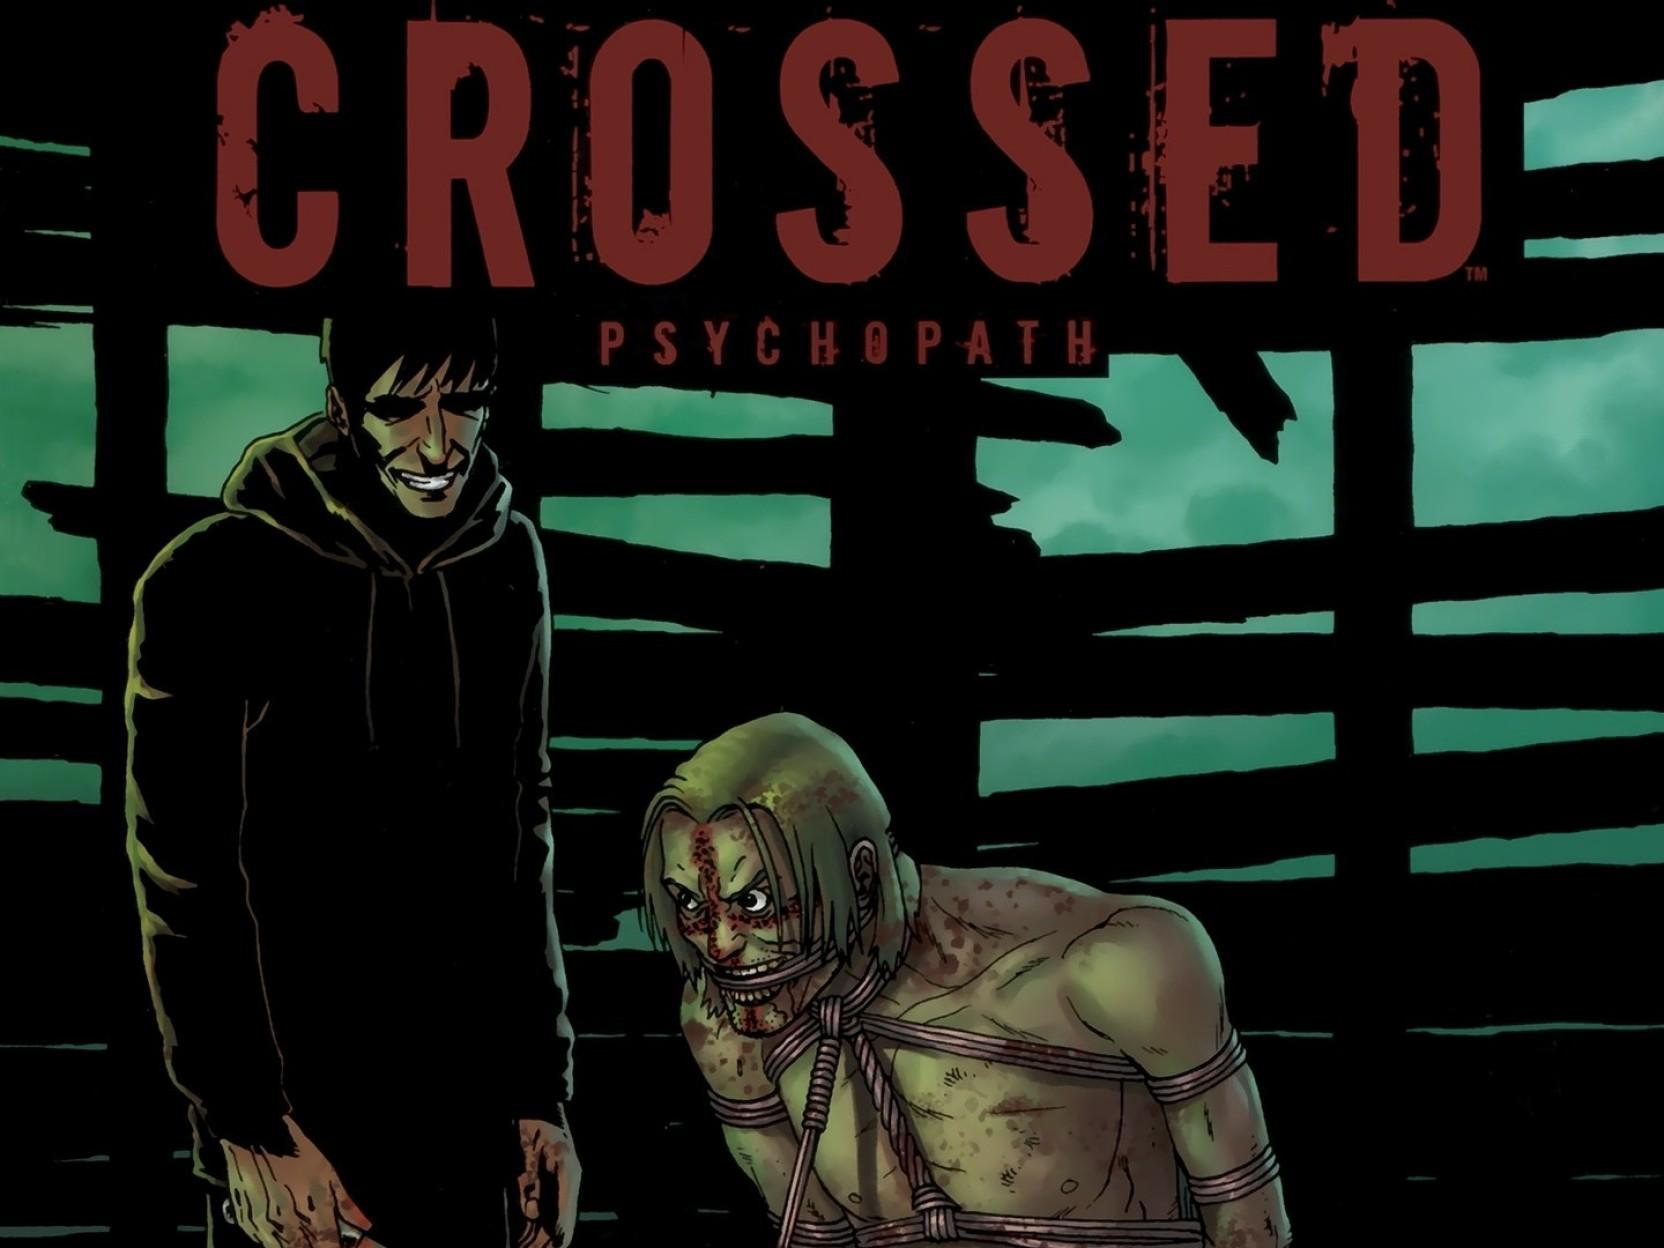 Comics Crossed: Psychopath Crossed HD Wallpaper Background Paper ...